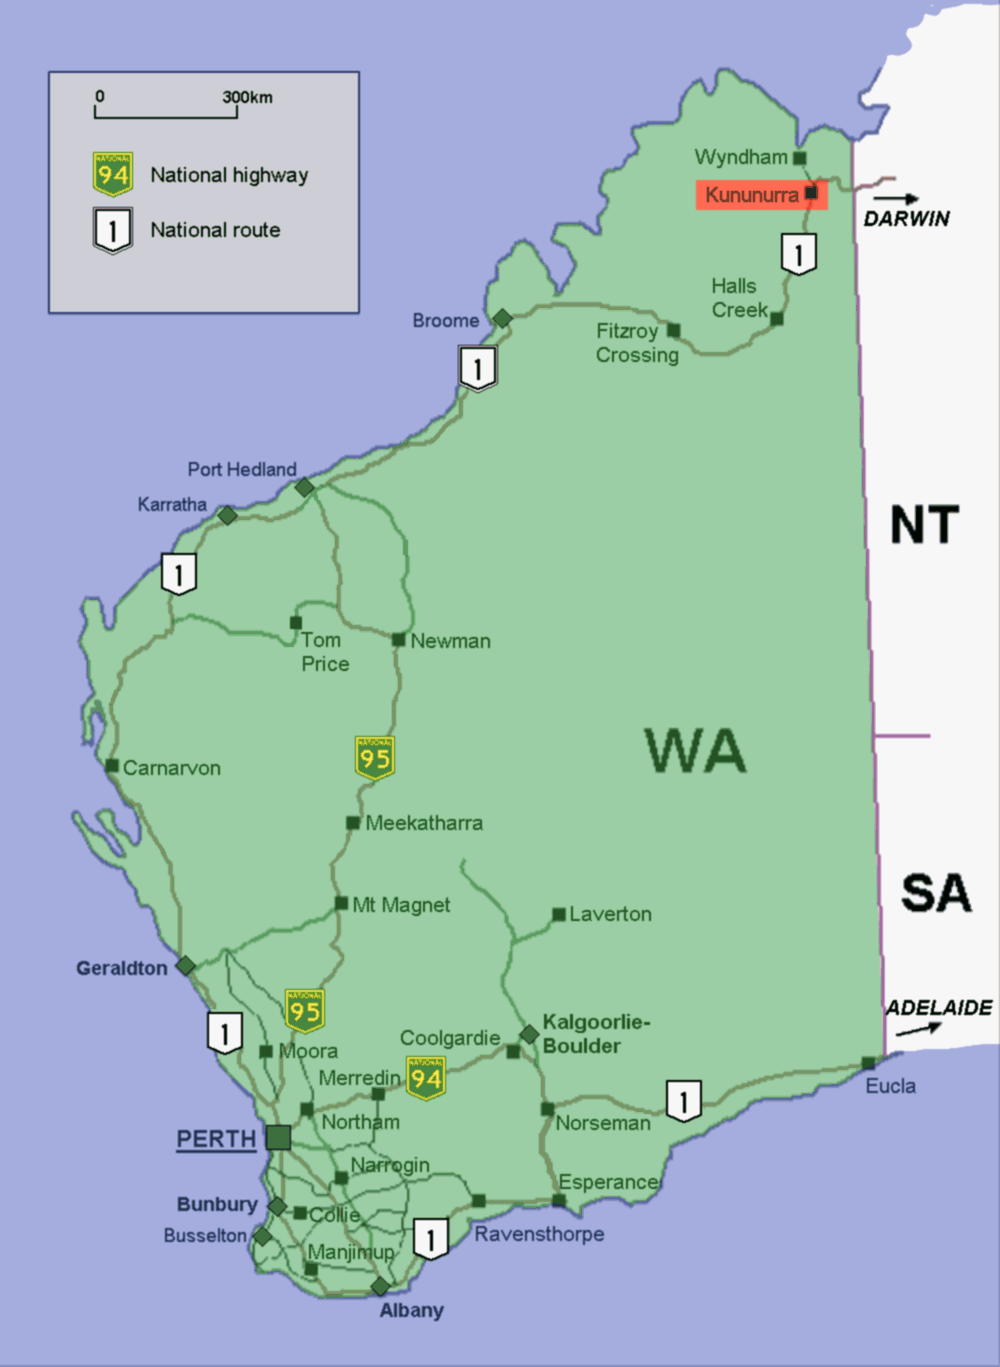 Australia Driving Map.Manual Driving Made Easy Www Manualdrivingmadeeasy Com Servicing The